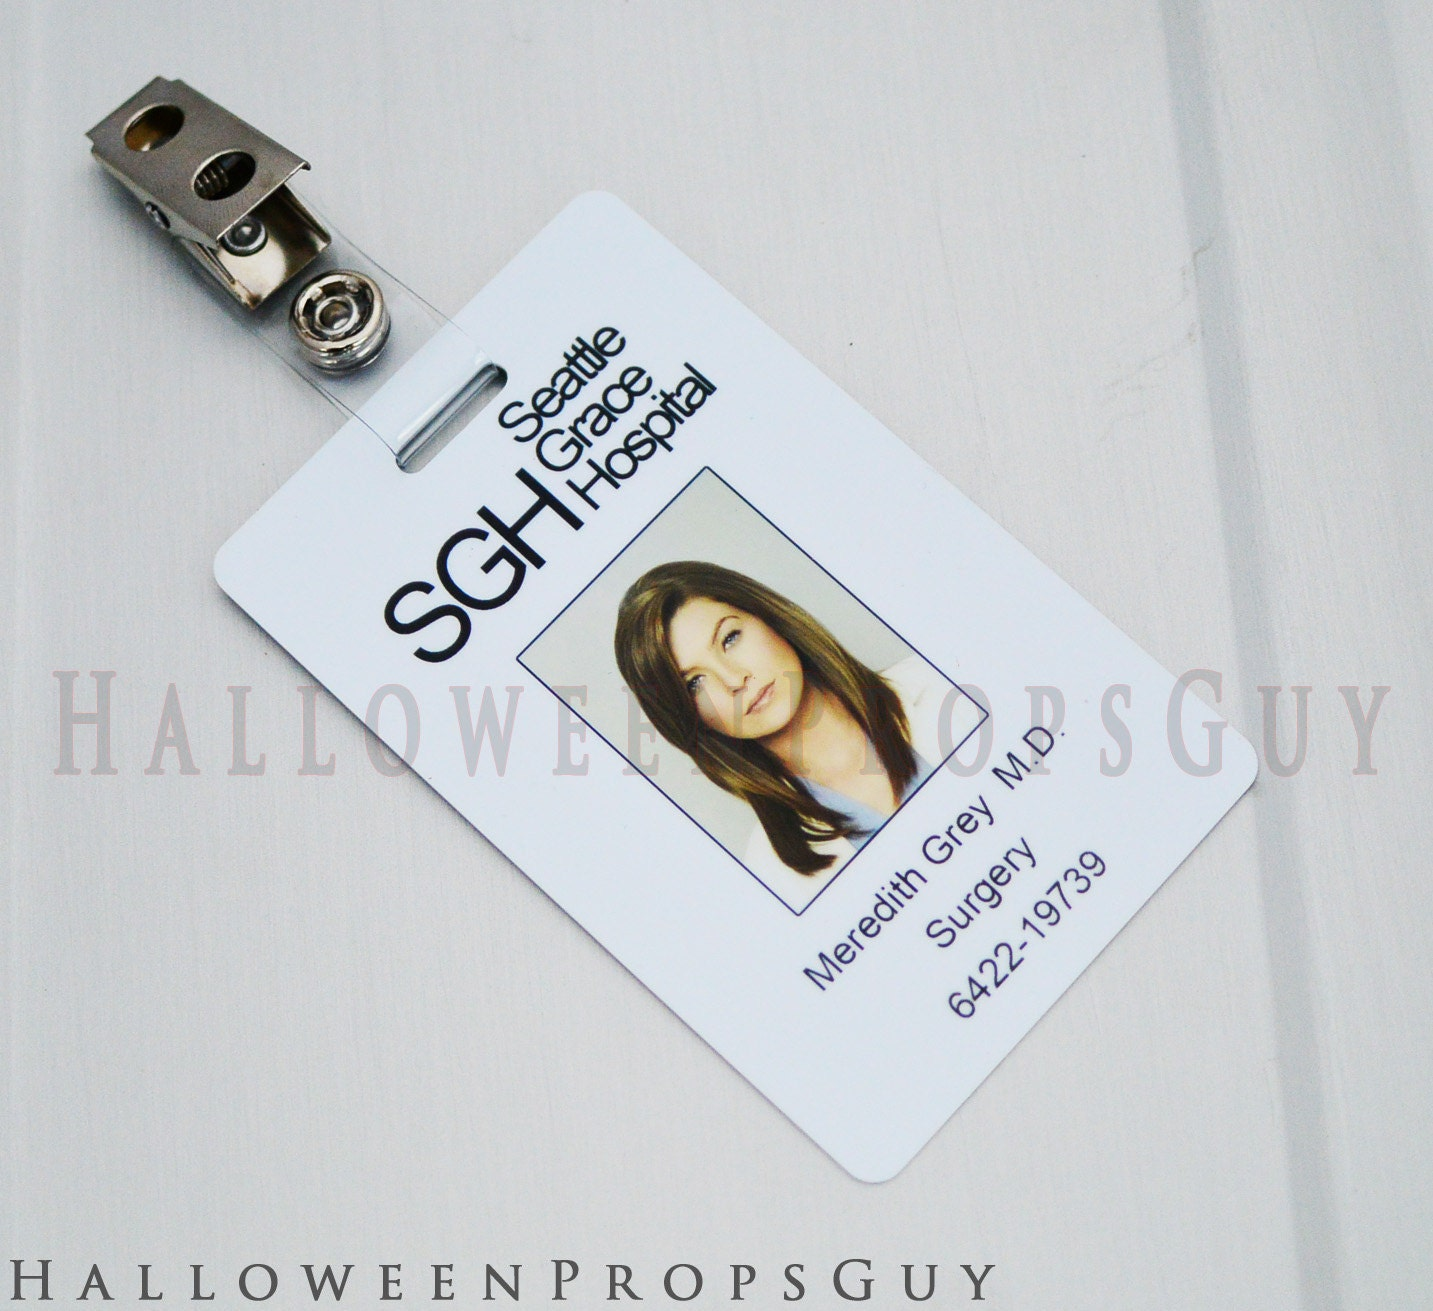 Grey\'s Anatomy Seattle Grace ID Card Replica with Clip